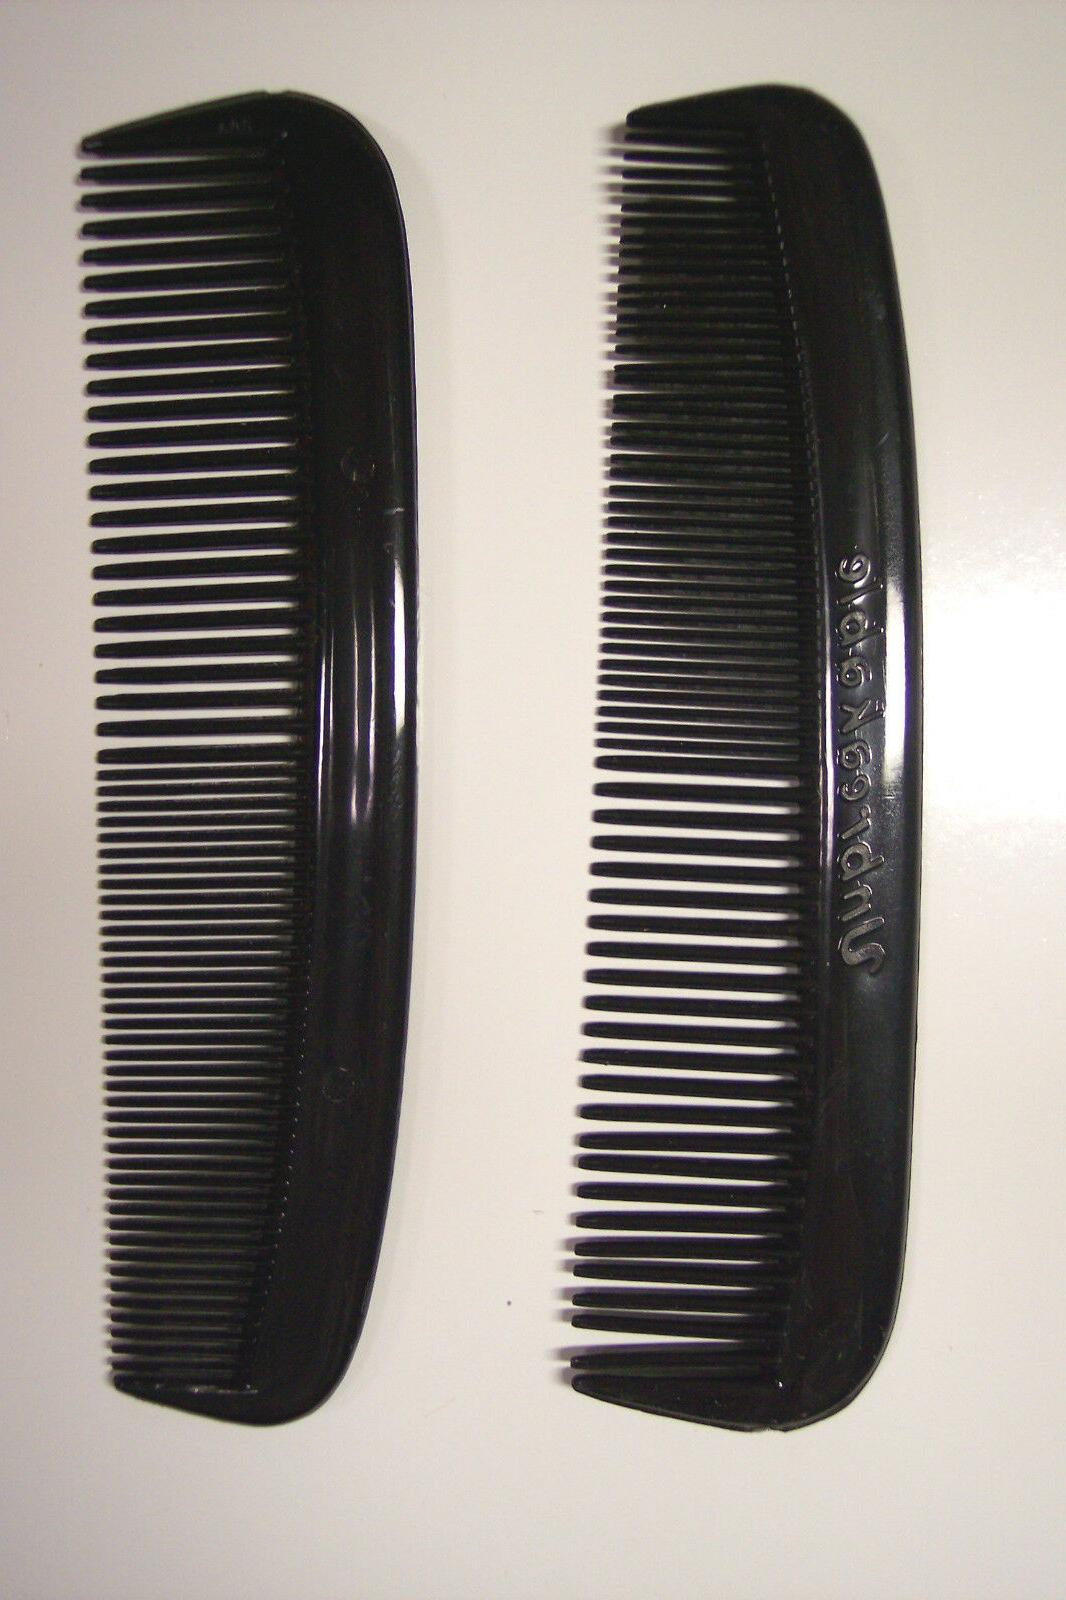 12 UNBREAKABLE HEAVY BLACK HAIR COMBS USA MADE